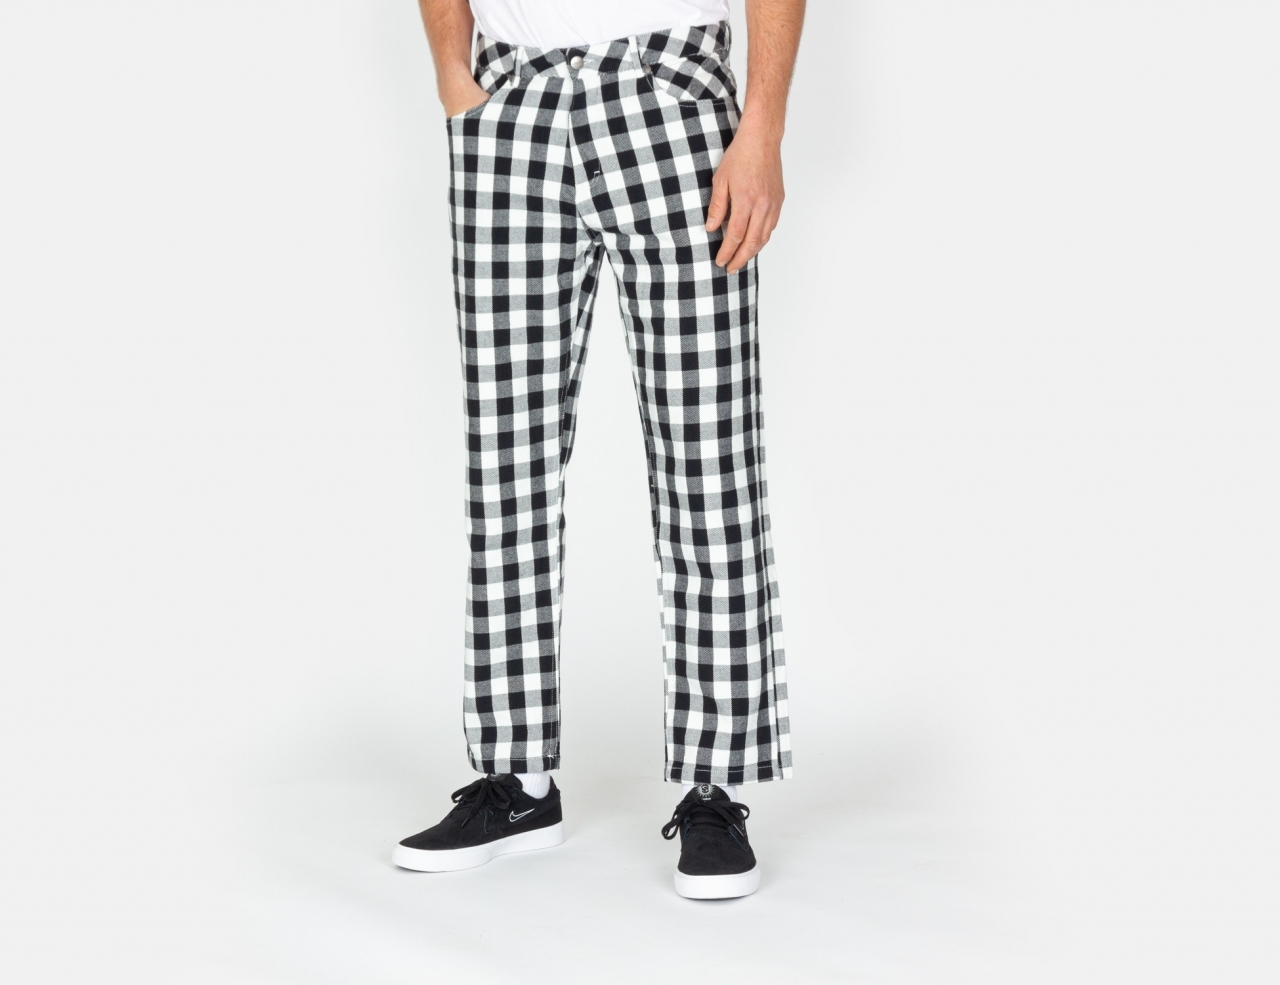 Afends Ninety Twos Relaxed Fit Chino Pant - Black / White